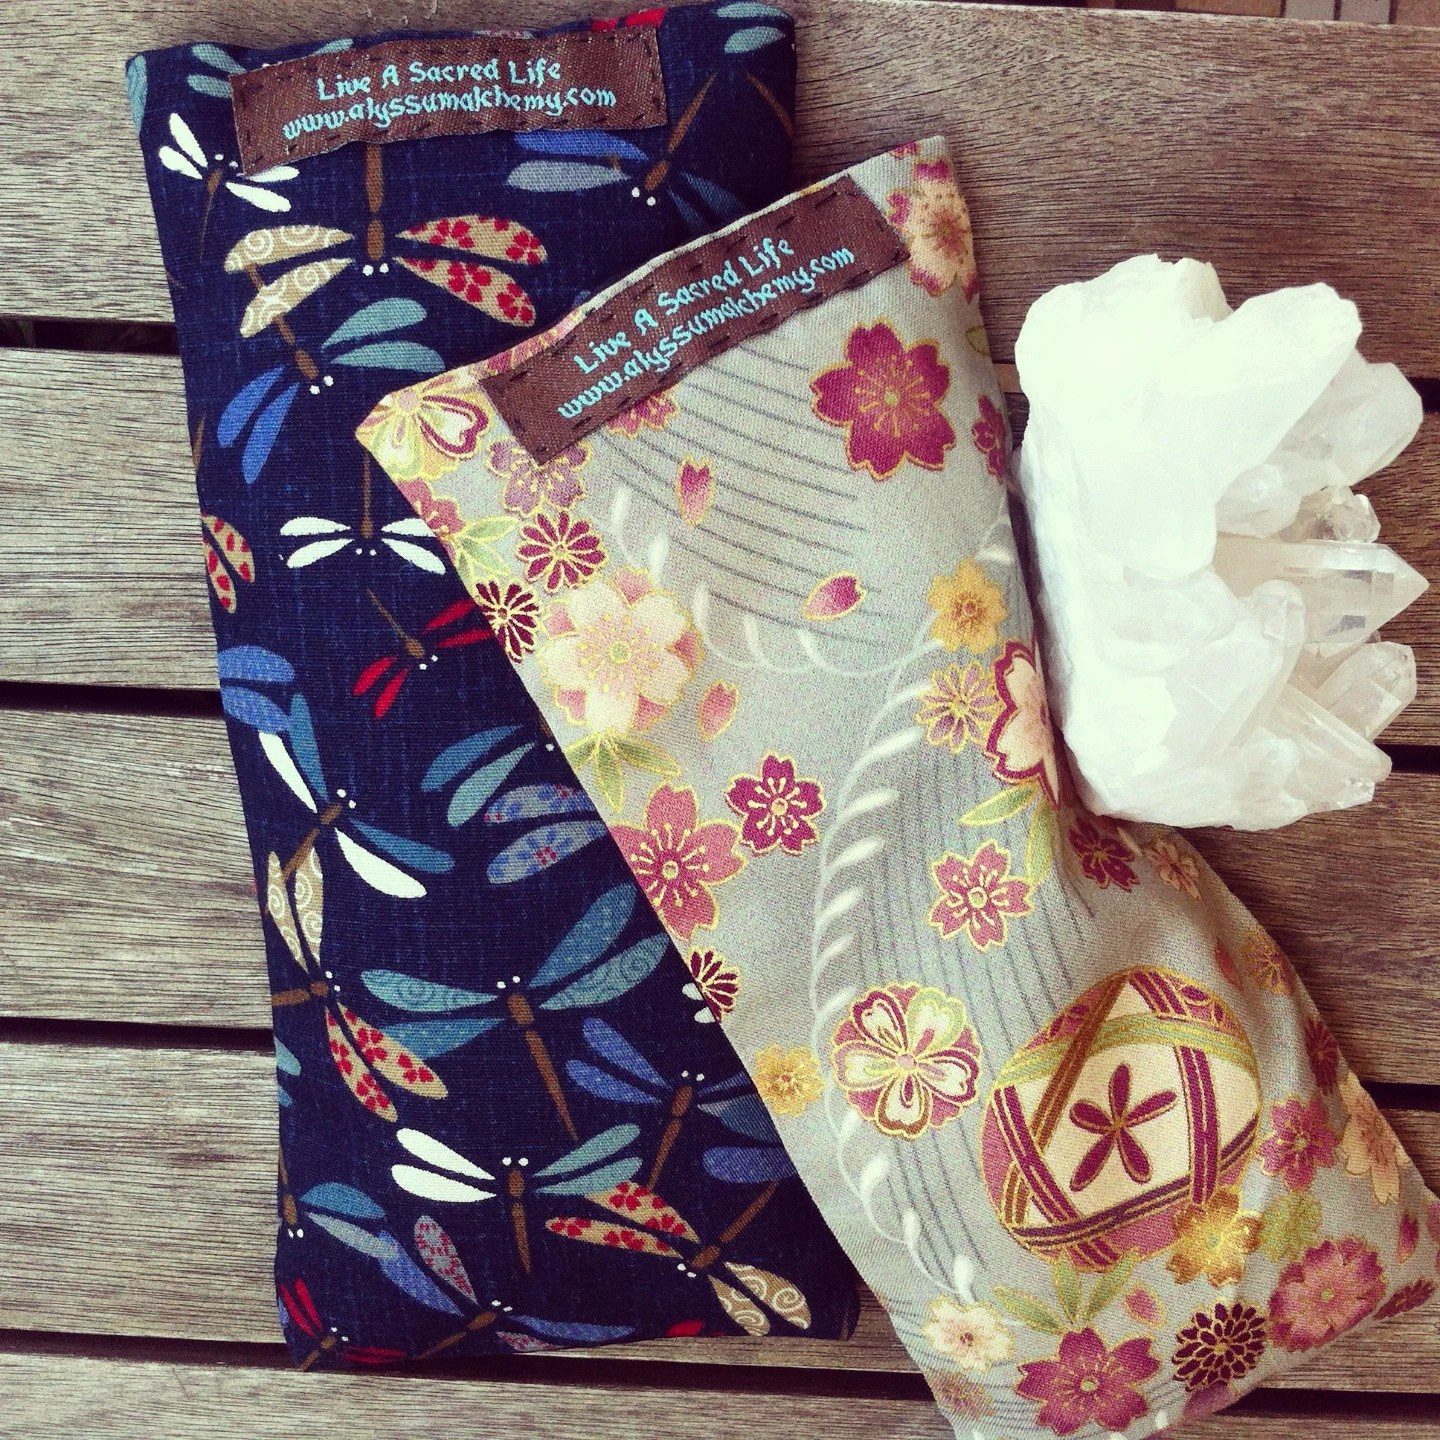 Eye Pillow Australia Organic Lavender Eye Pillows With Crystals And Japanese Fabric